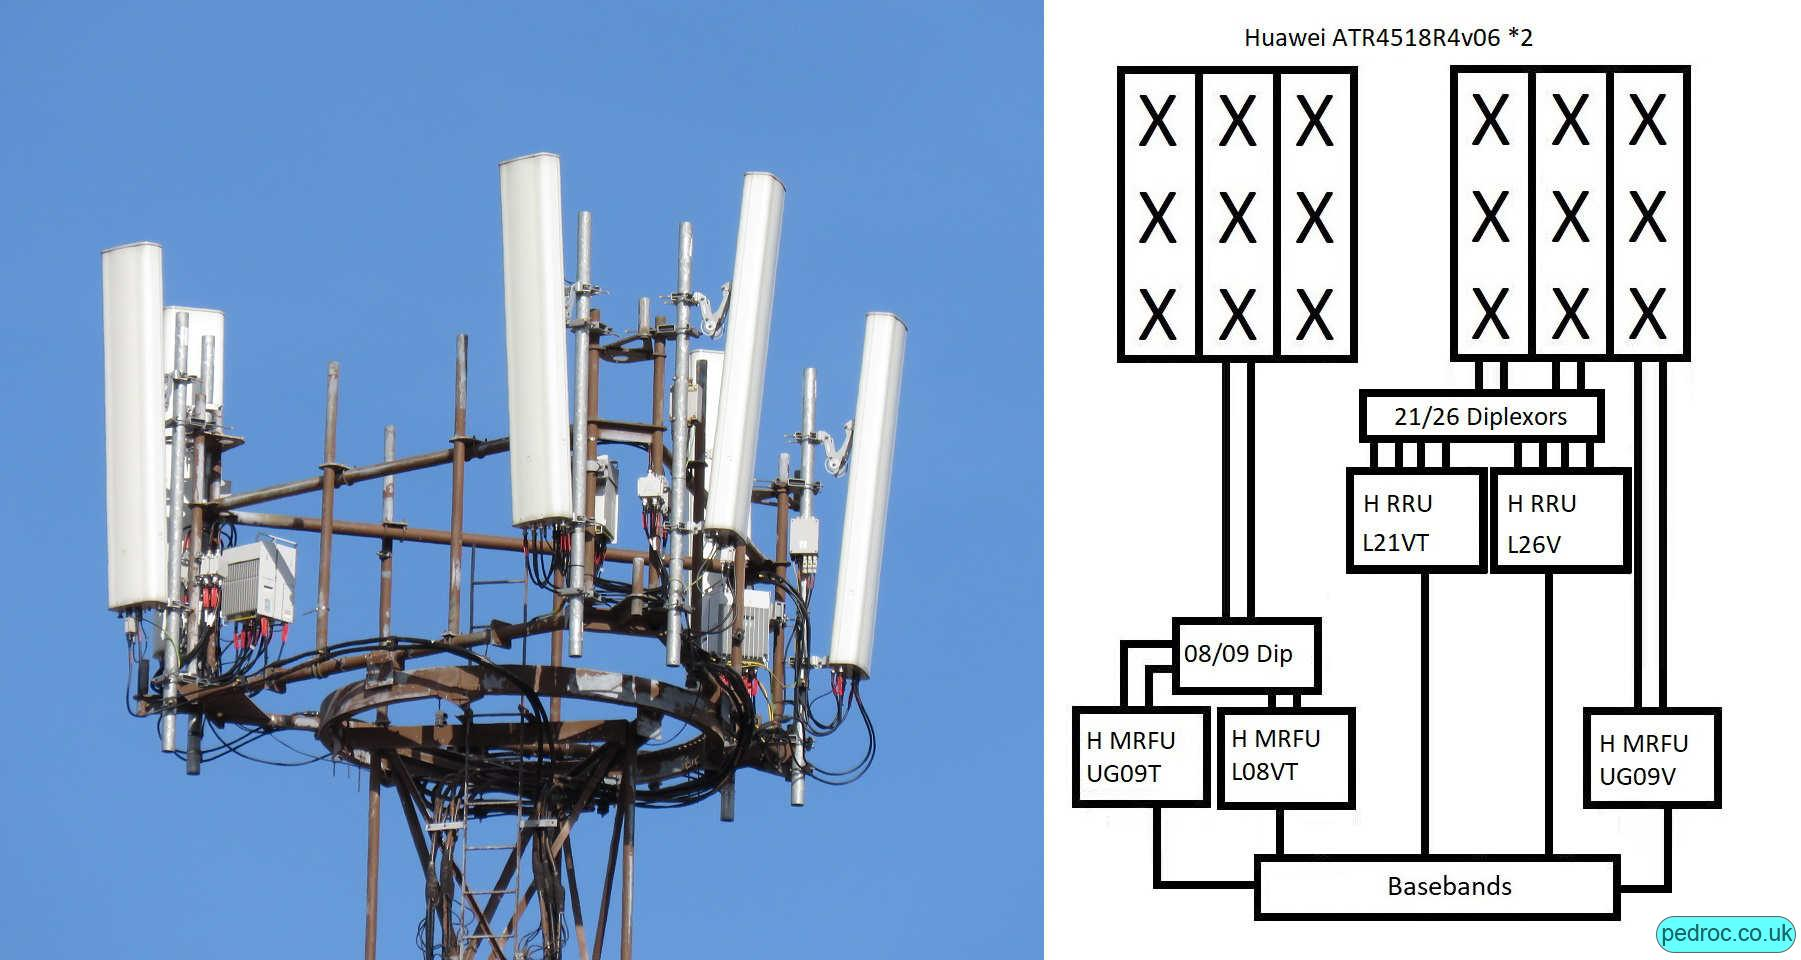 Vodafone Huawei very high site with two Huawei ATR4518R4v06 antennas and Huawei 2100MHz and 2600MHz RRUs.